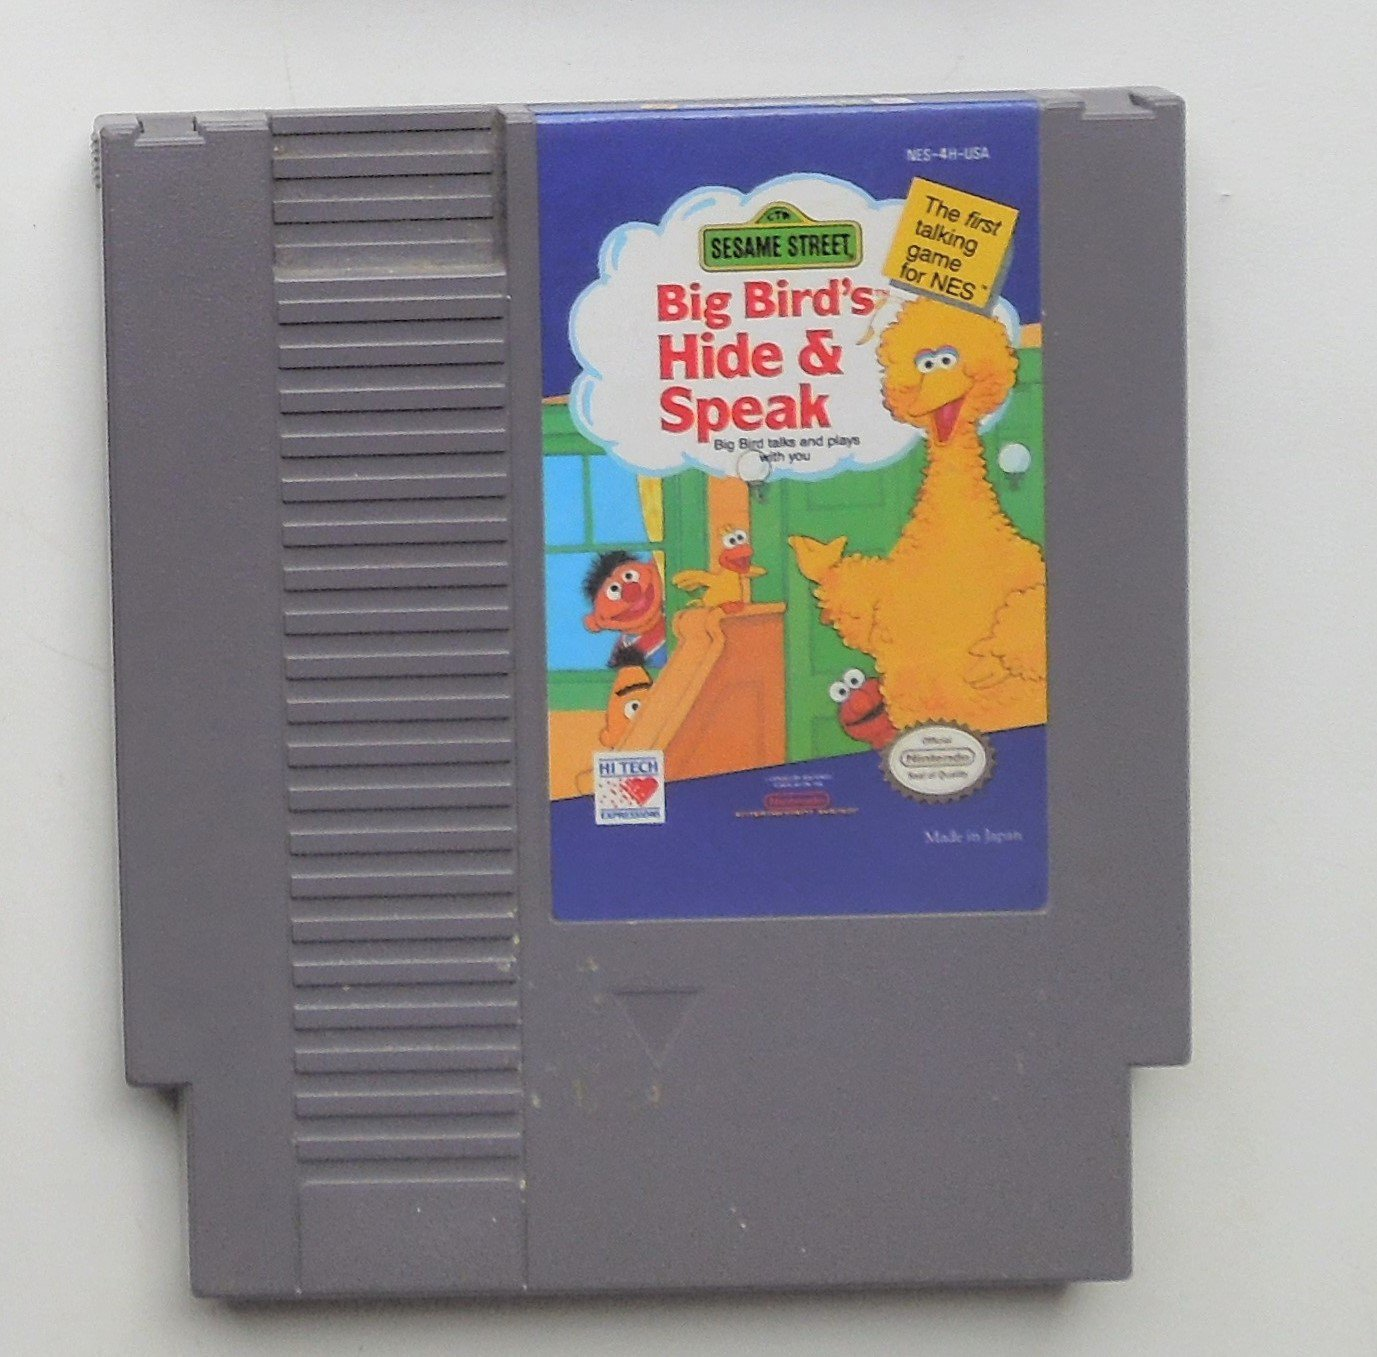 1990 HI Tech Big Bird's Hide & Speak For NES Nintendo Entertainment system